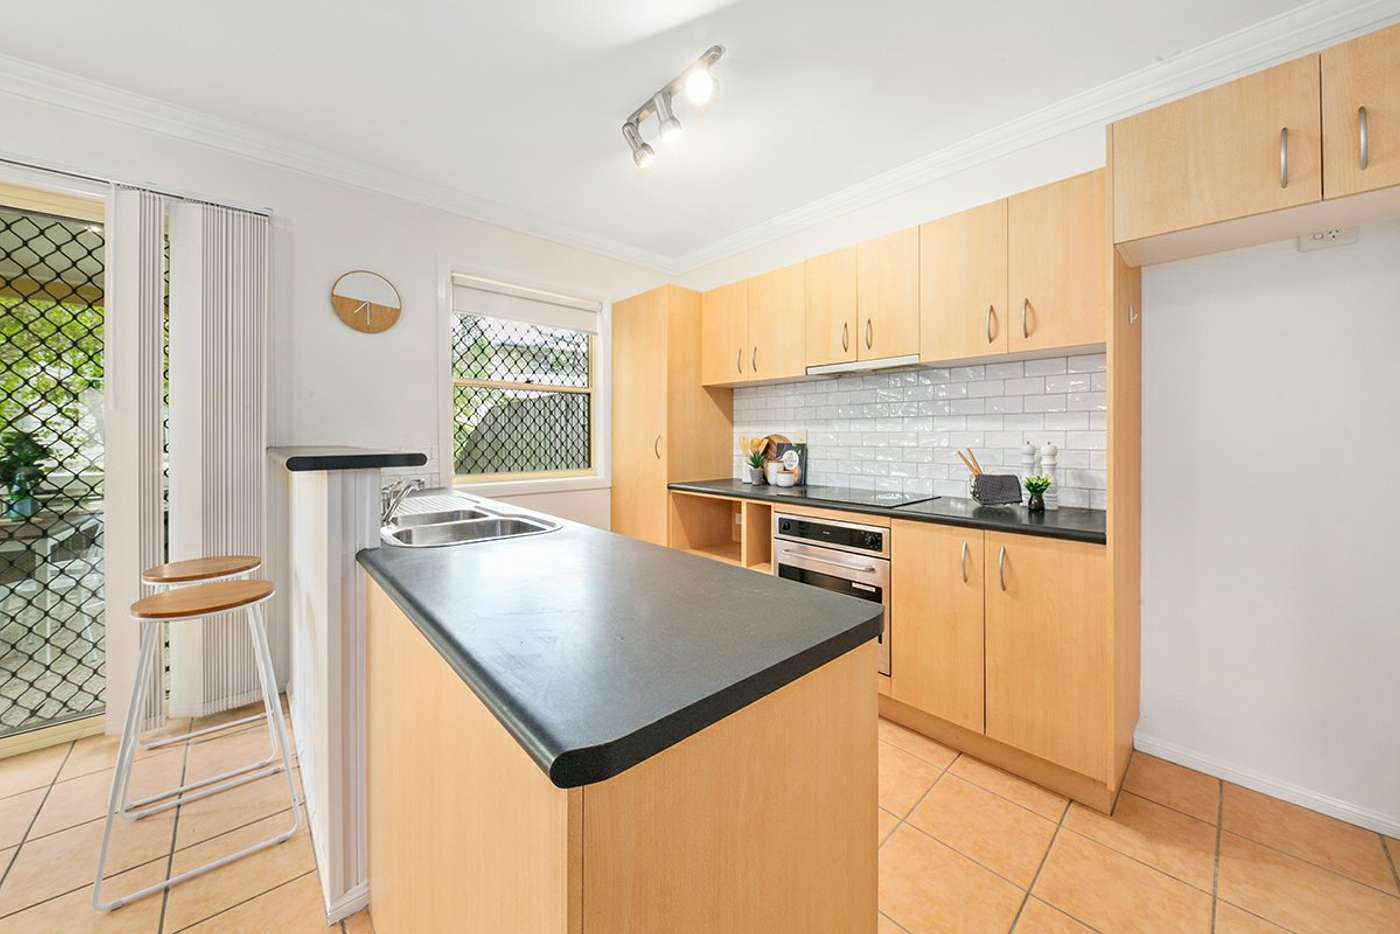 Sixth view of Homely townhouse listing, 3/15 Gustavson Street, Annerley QLD 4103